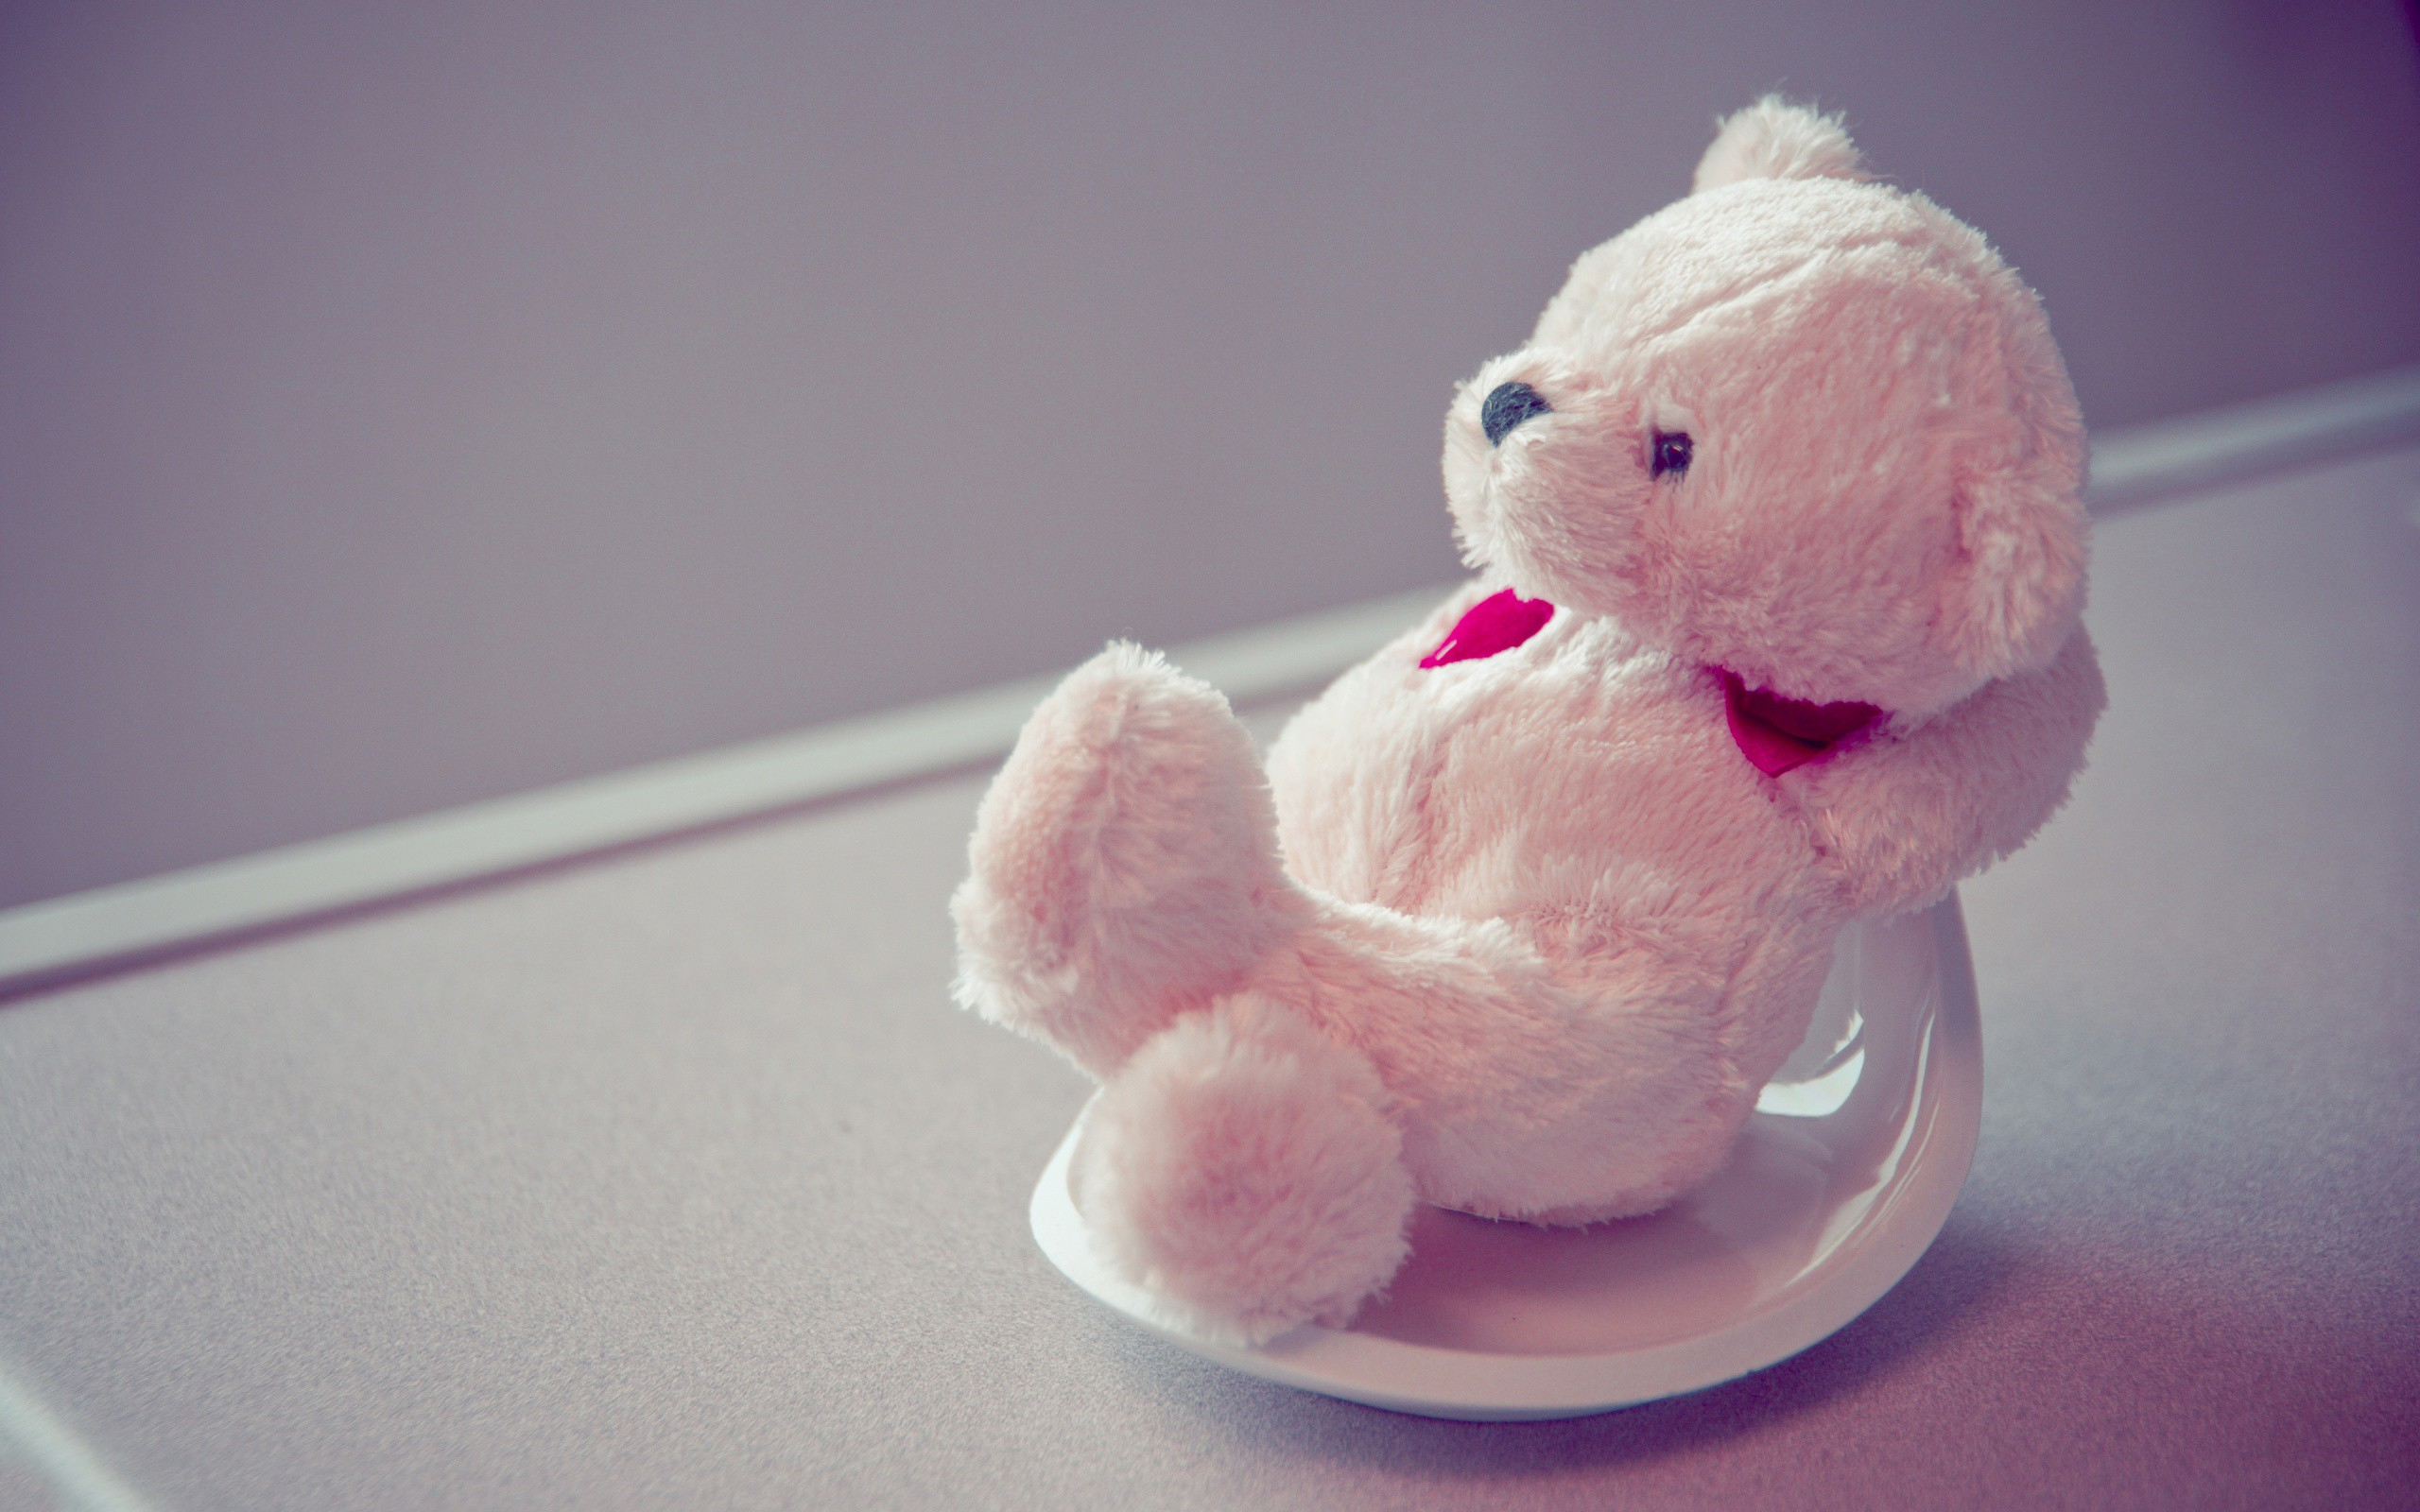 cute pink teddy bear